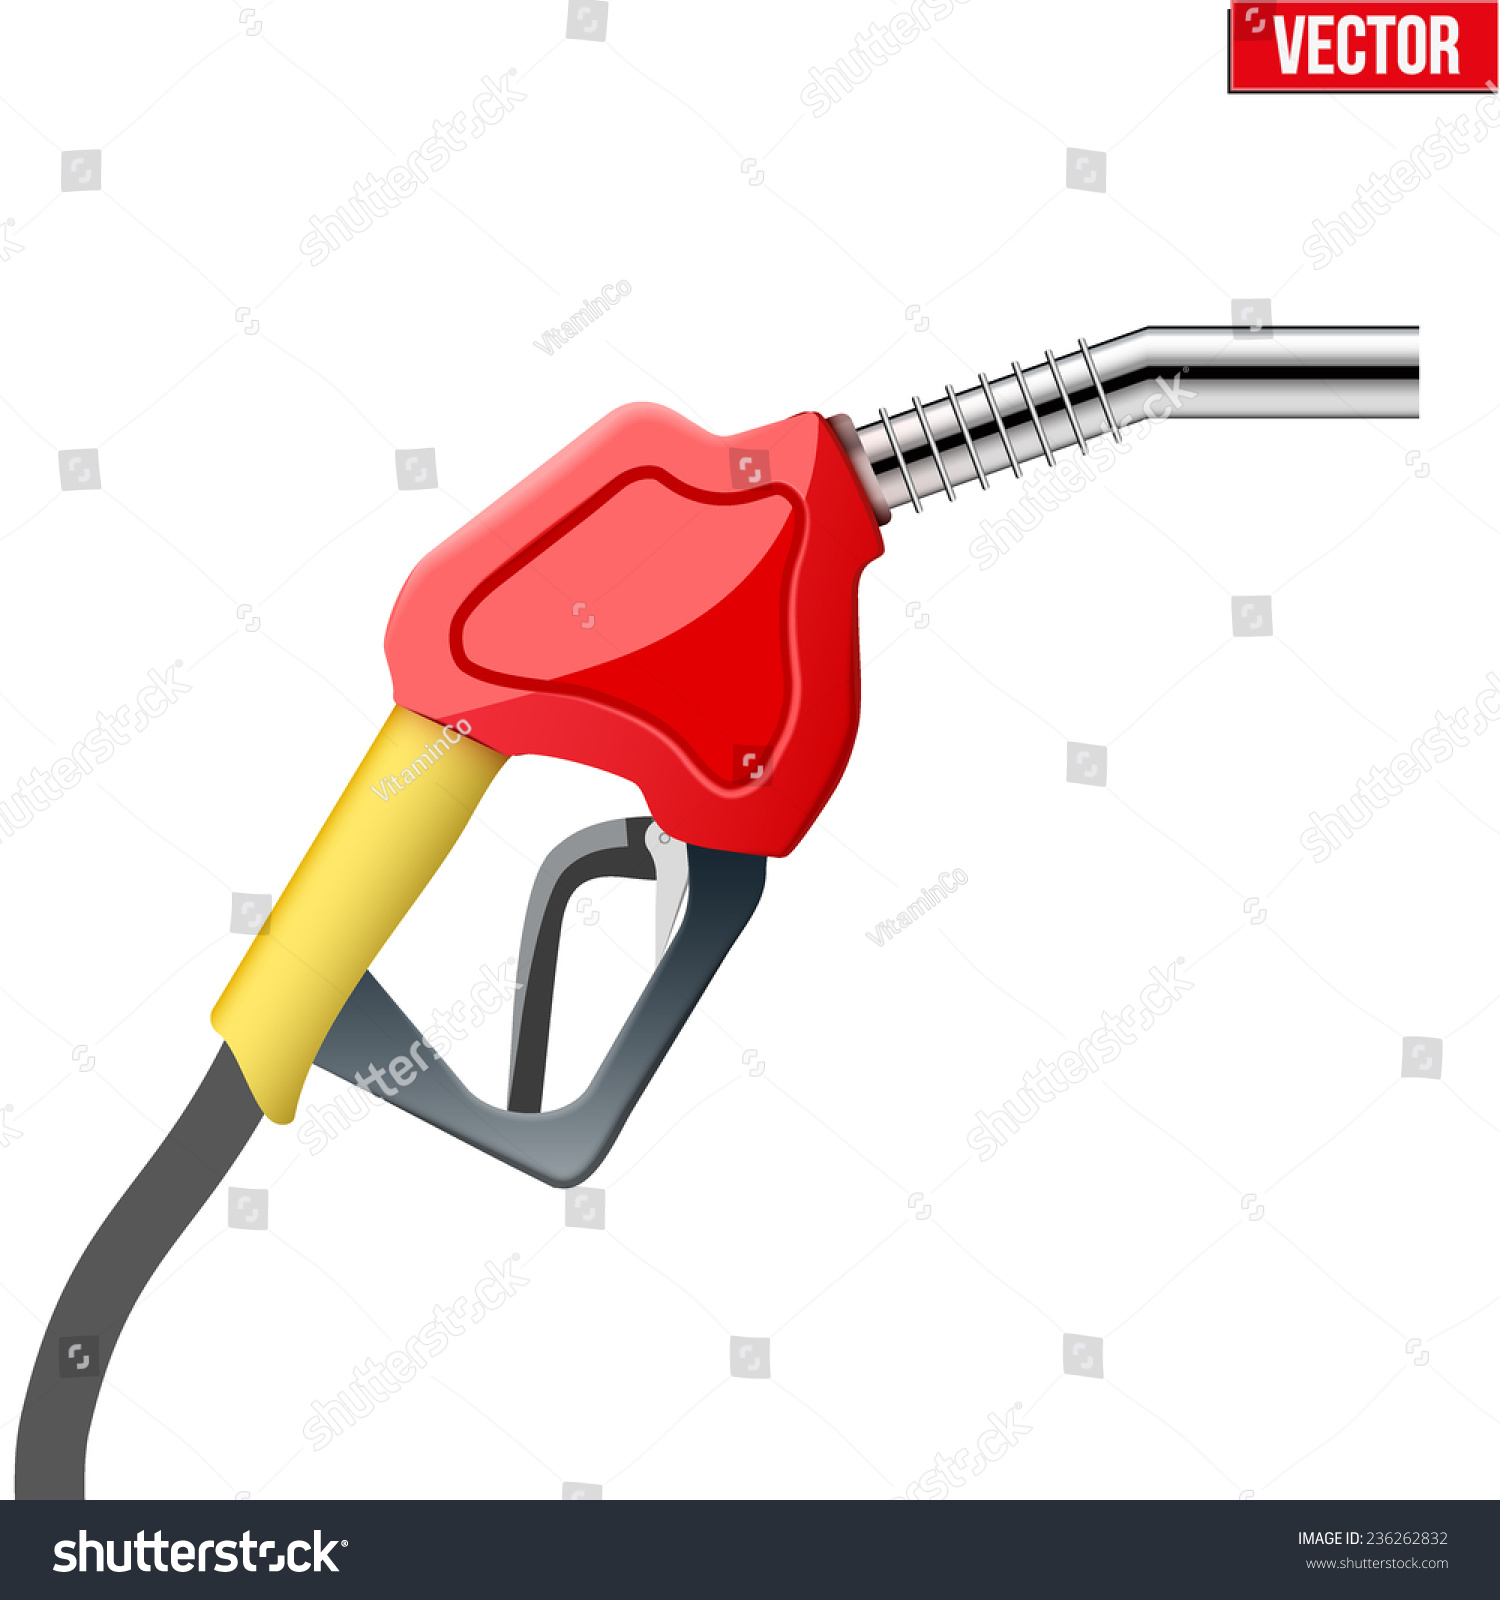 Petrol Handle And Nozzle Back Stock Photos - Image: 34568943